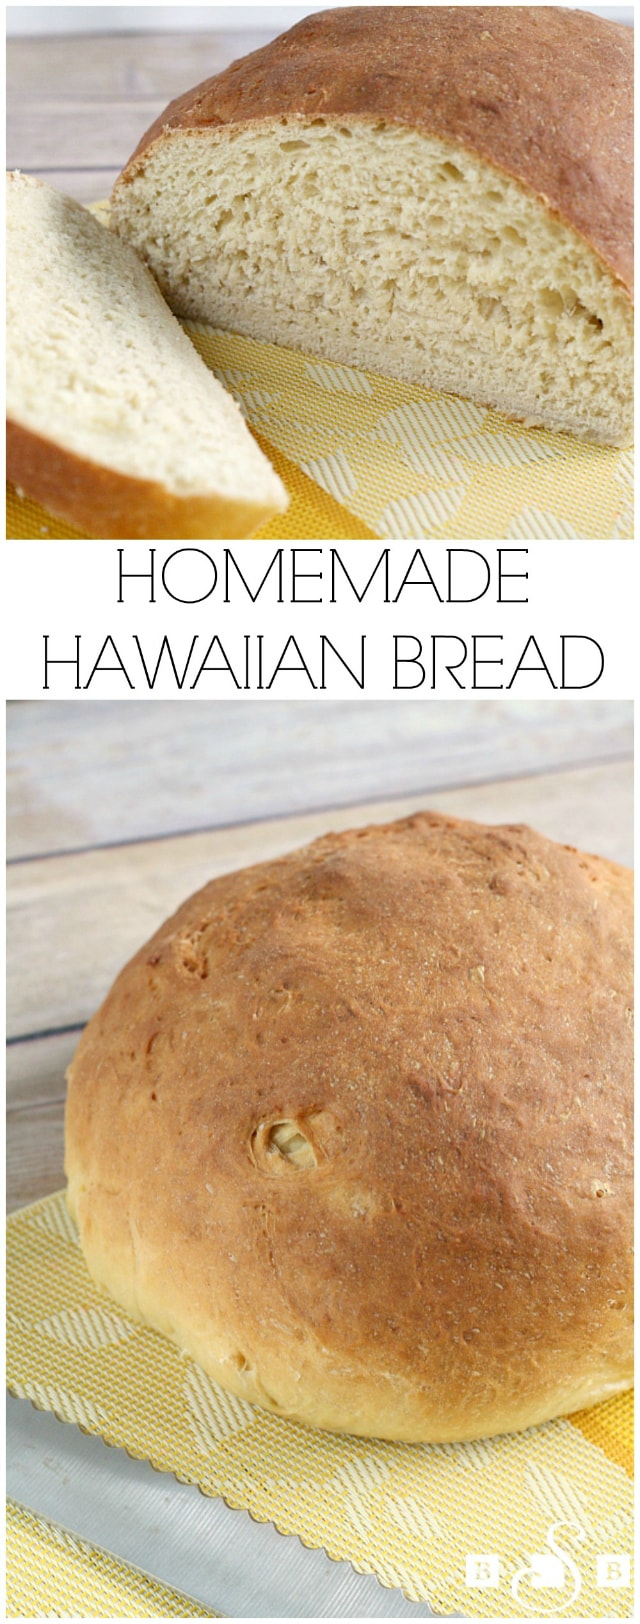 Hawaiian Bread made fresh with butter, eggs, flour, pineapple juice, ginger and vanilla. Simple, flavorful #Hawaiian #Bread recipe you can enjoy at home!